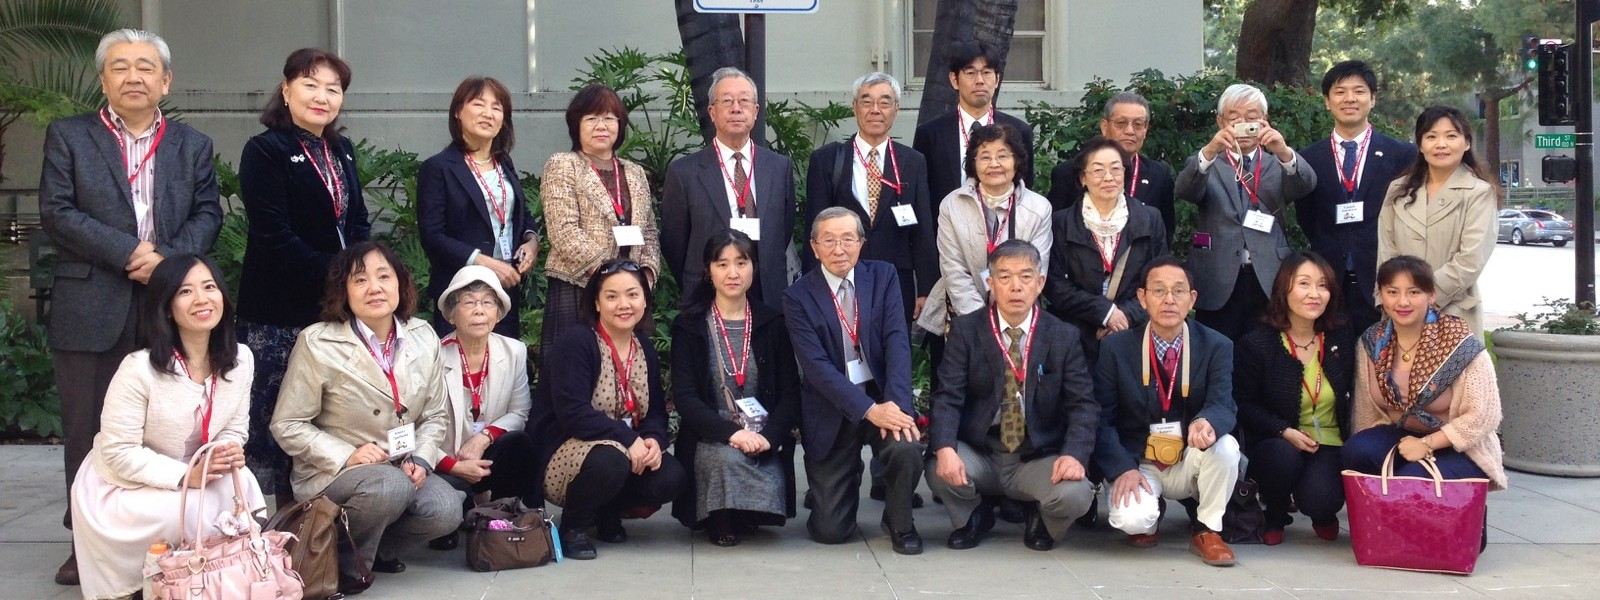 Ota Japan 2015 Delegation visited to celebrate our 30th year as Sister Cities.